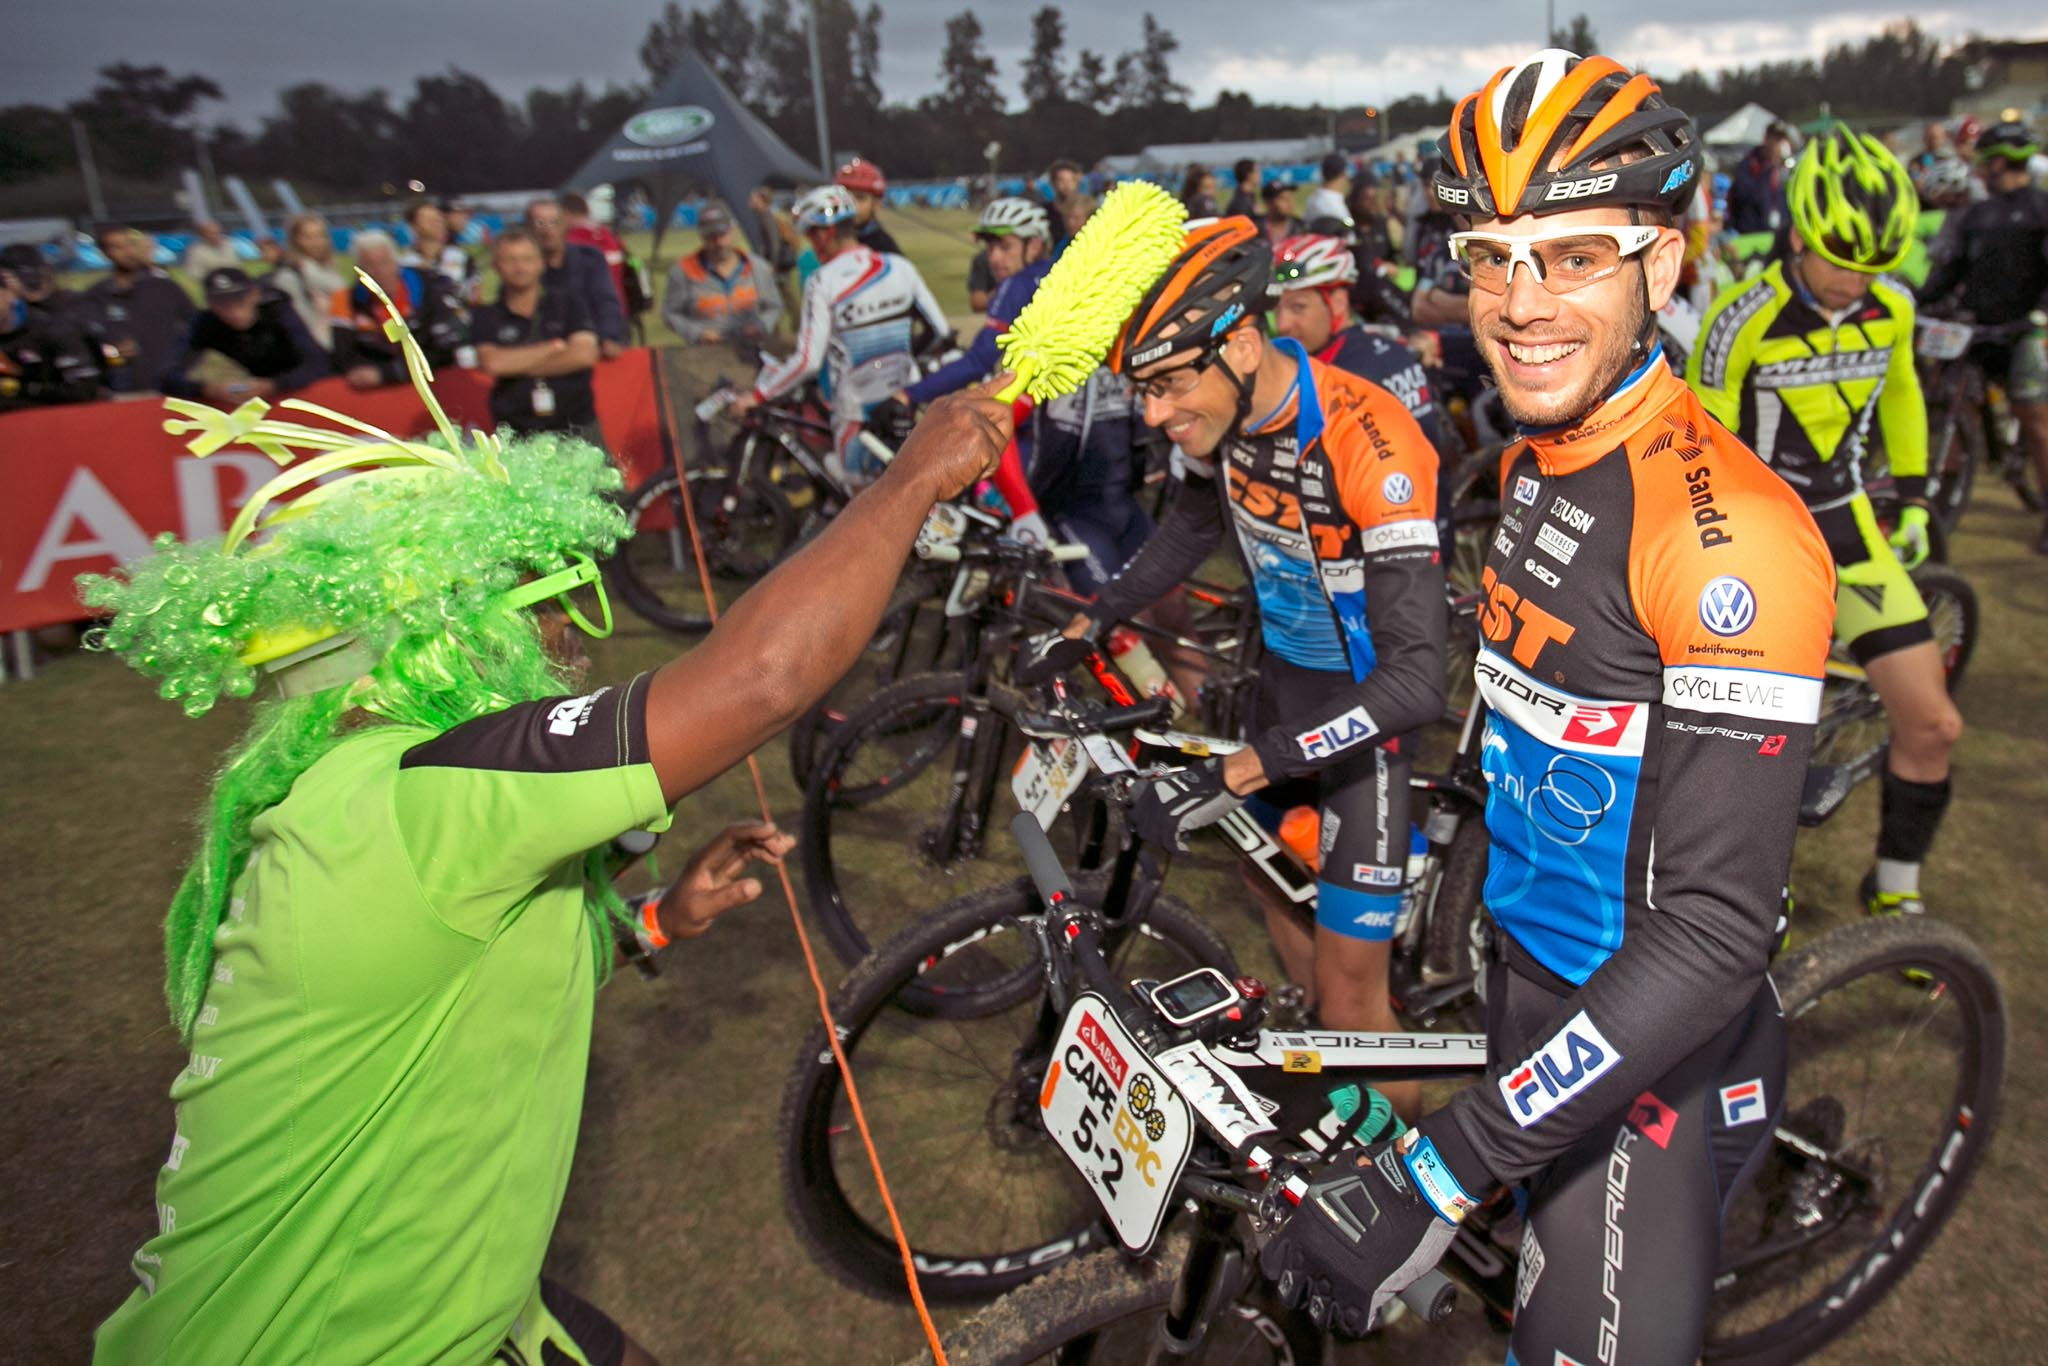 Rudi van Houts enjoying the attention of Sipho from Exxaro during stage 5 of the 2016 Absa Cape Epic Mountain Bike stage race held from the Cape Peninsula University of Technology in Wellington to Boschendal in Stellenbosch, South Africa on the 18th March 2016 Photo by Mark Sampson/Cape Epic/SPORTZPICS PLEASE ENSURE THE APPROPRIATE CREDIT IS GIVEN TO THE PHOTOGRAPHER AND SPORTZPICS ALONG WITH THE ABSA CAPE EPIC ace2016